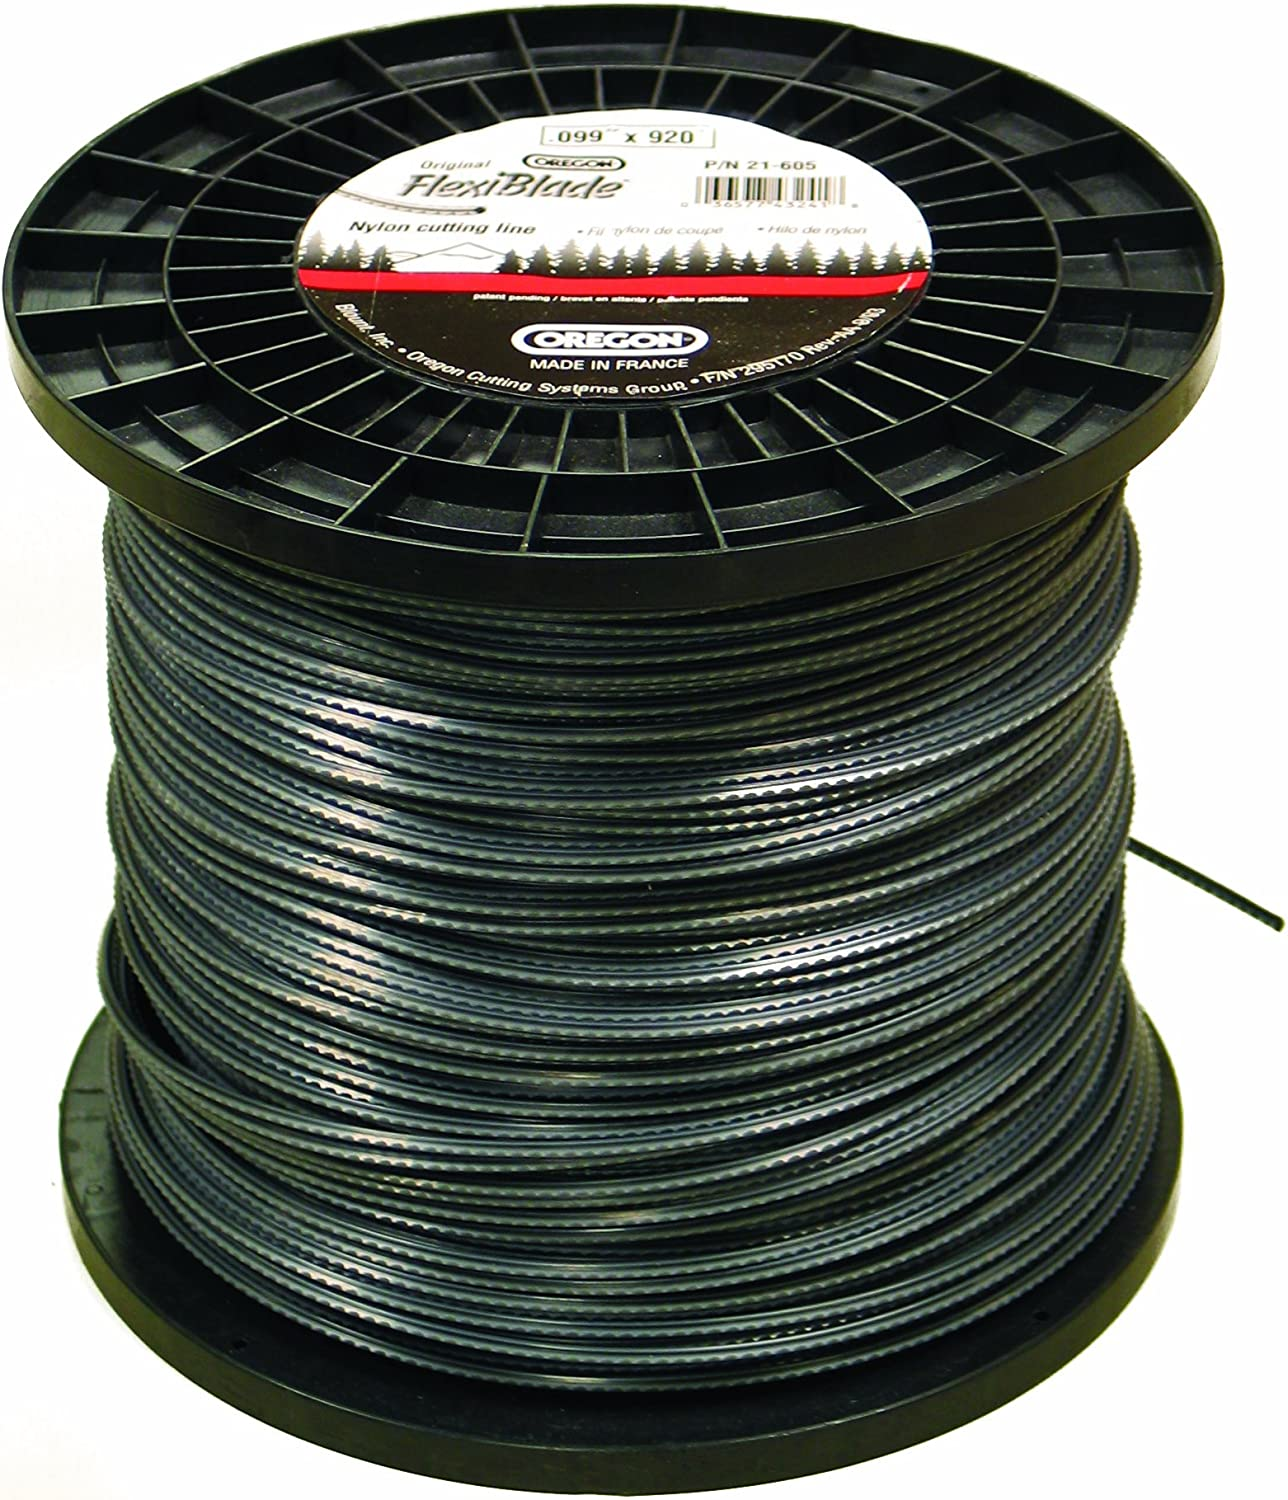 Oregon 21-605 FlexiBlade 920-Feet Large Trimmer String of Opening large quality assurance release sale Spool